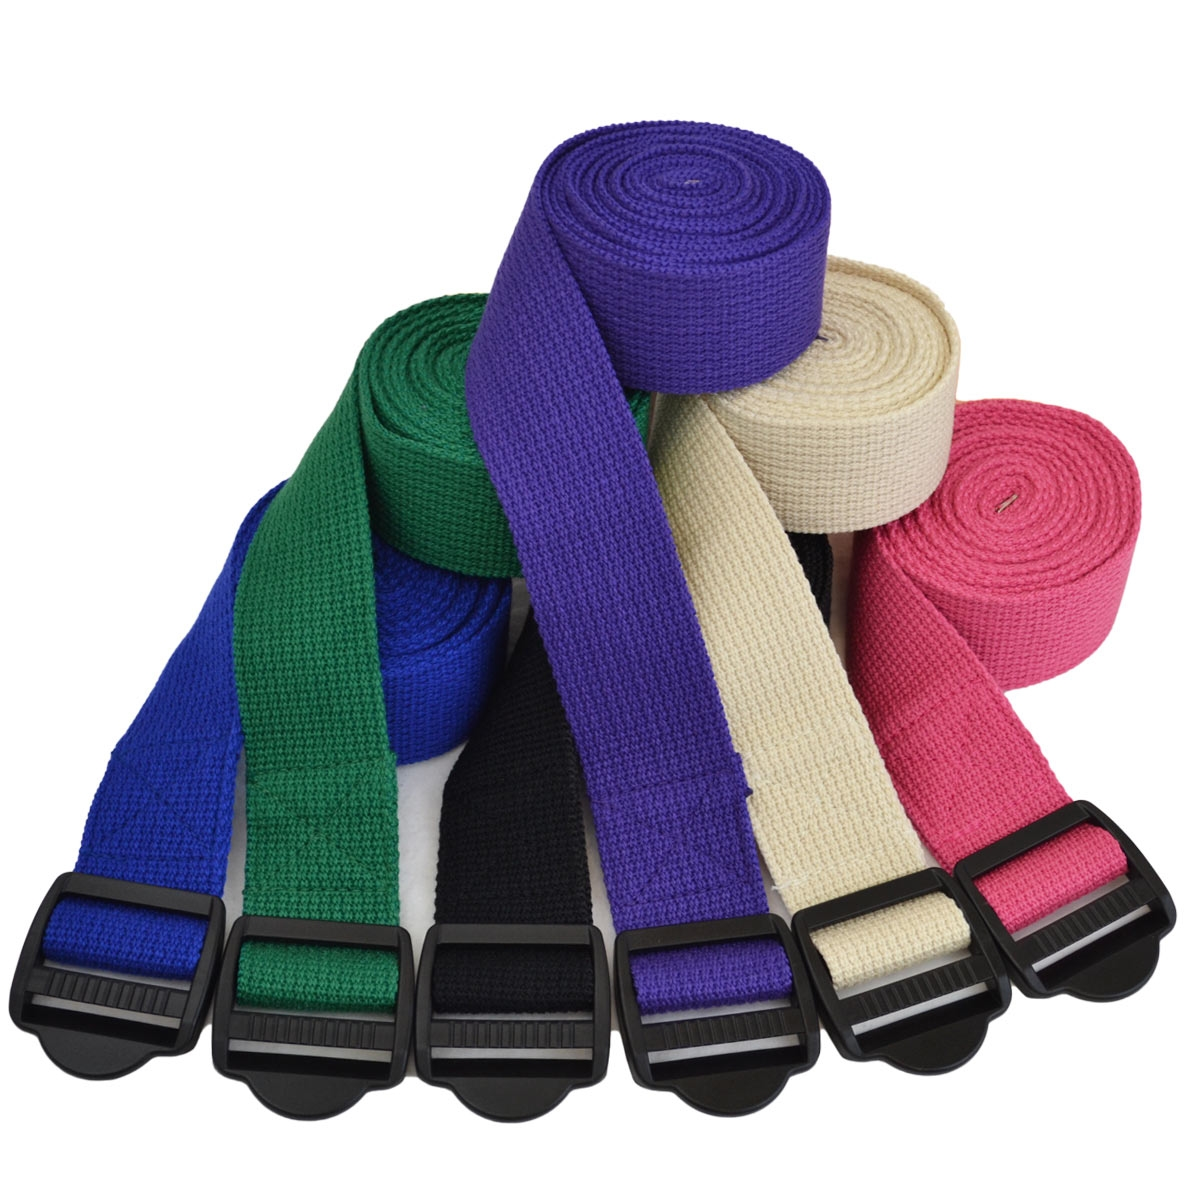 6' Cinch Buckle Cotton Yoga Strap